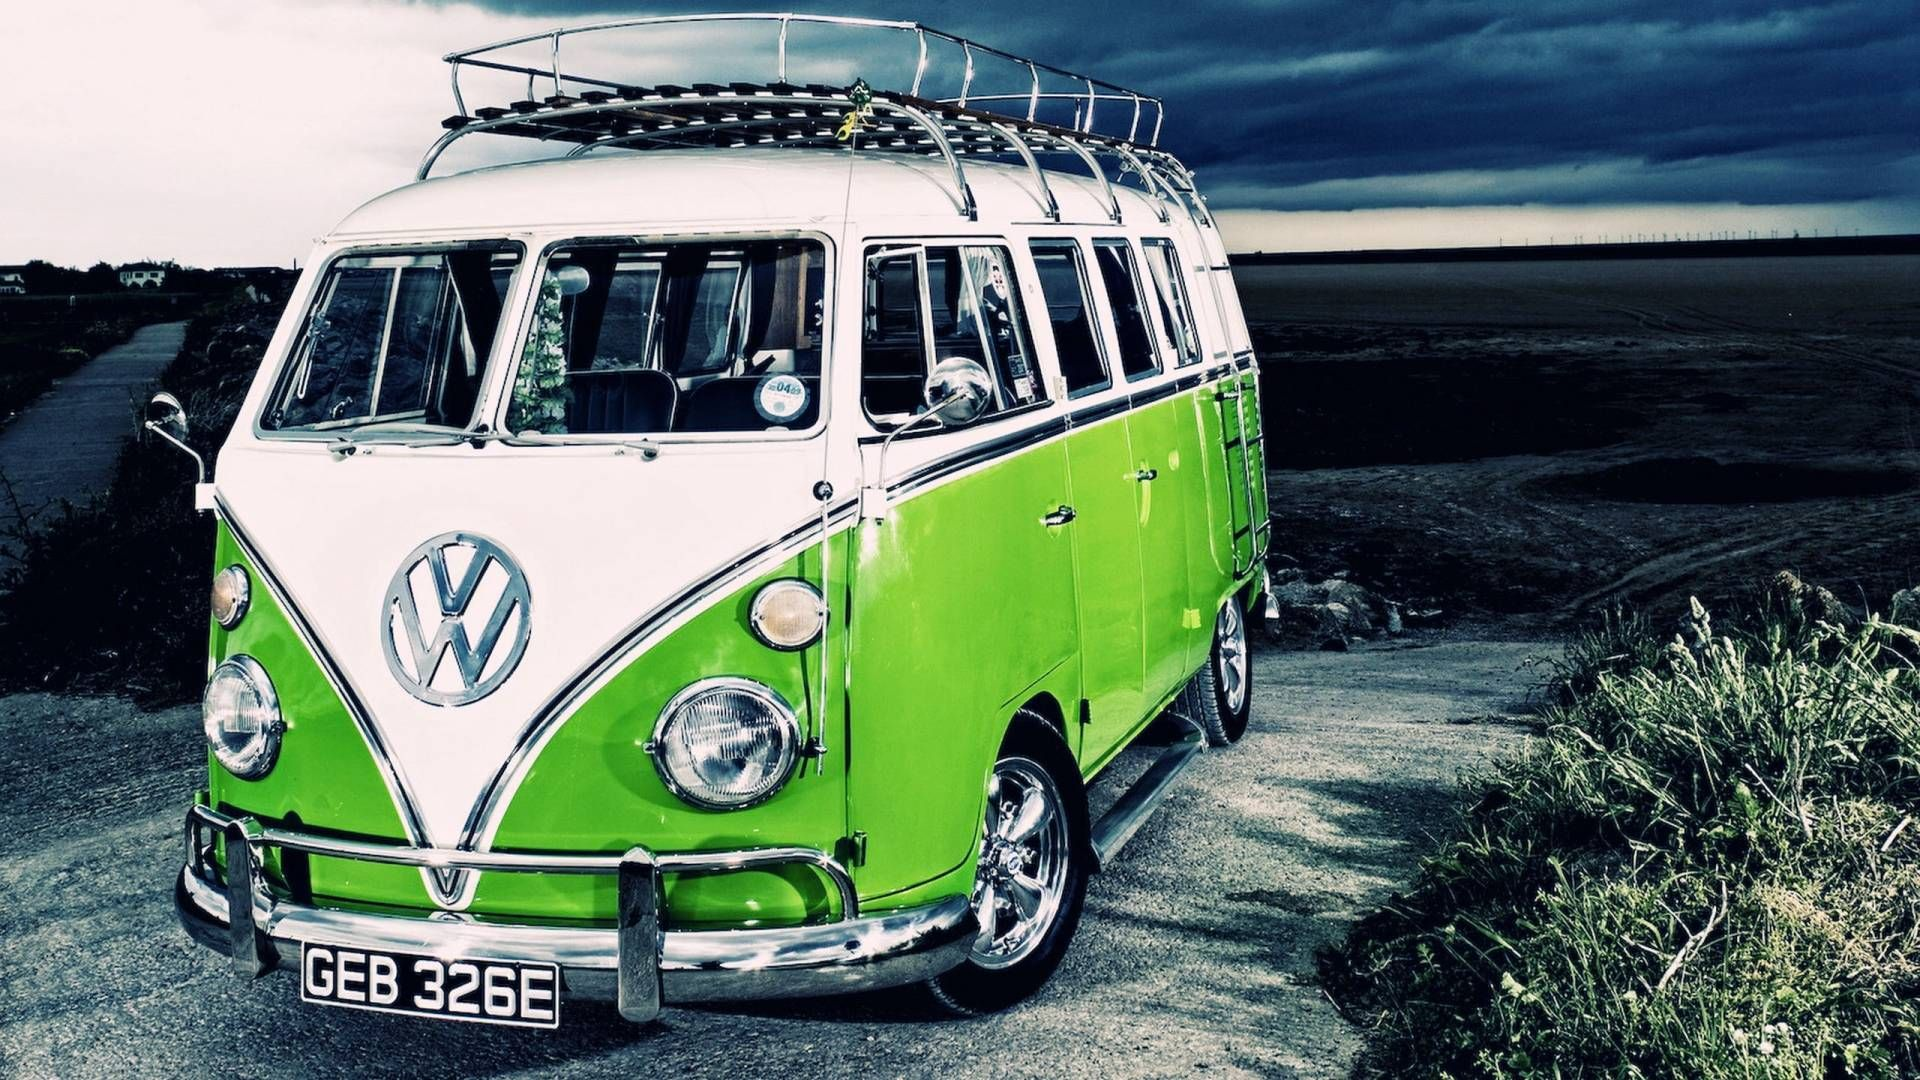 Volkswagen bus wallpaper hd resolution fuf